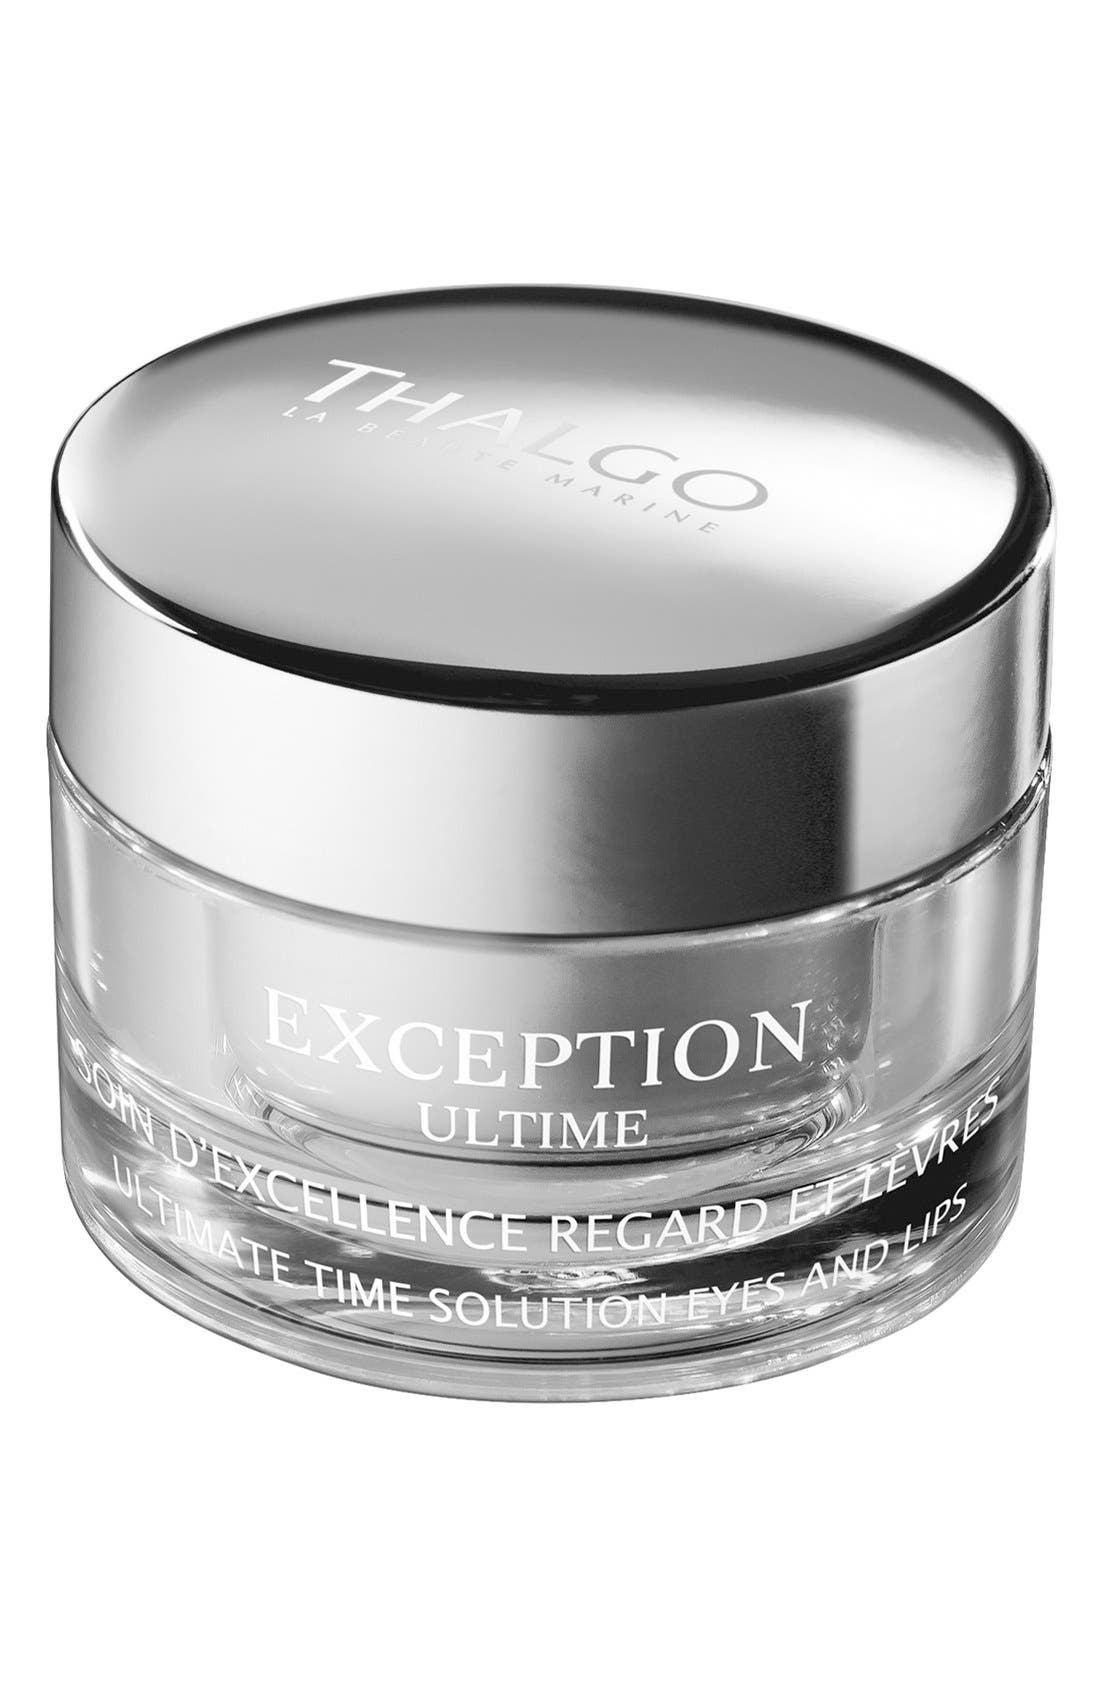 'Exception Ultime' Ultimate Time Solution Eyes & Lips,                             Main thumbnail 1, color,                             NO COLOR